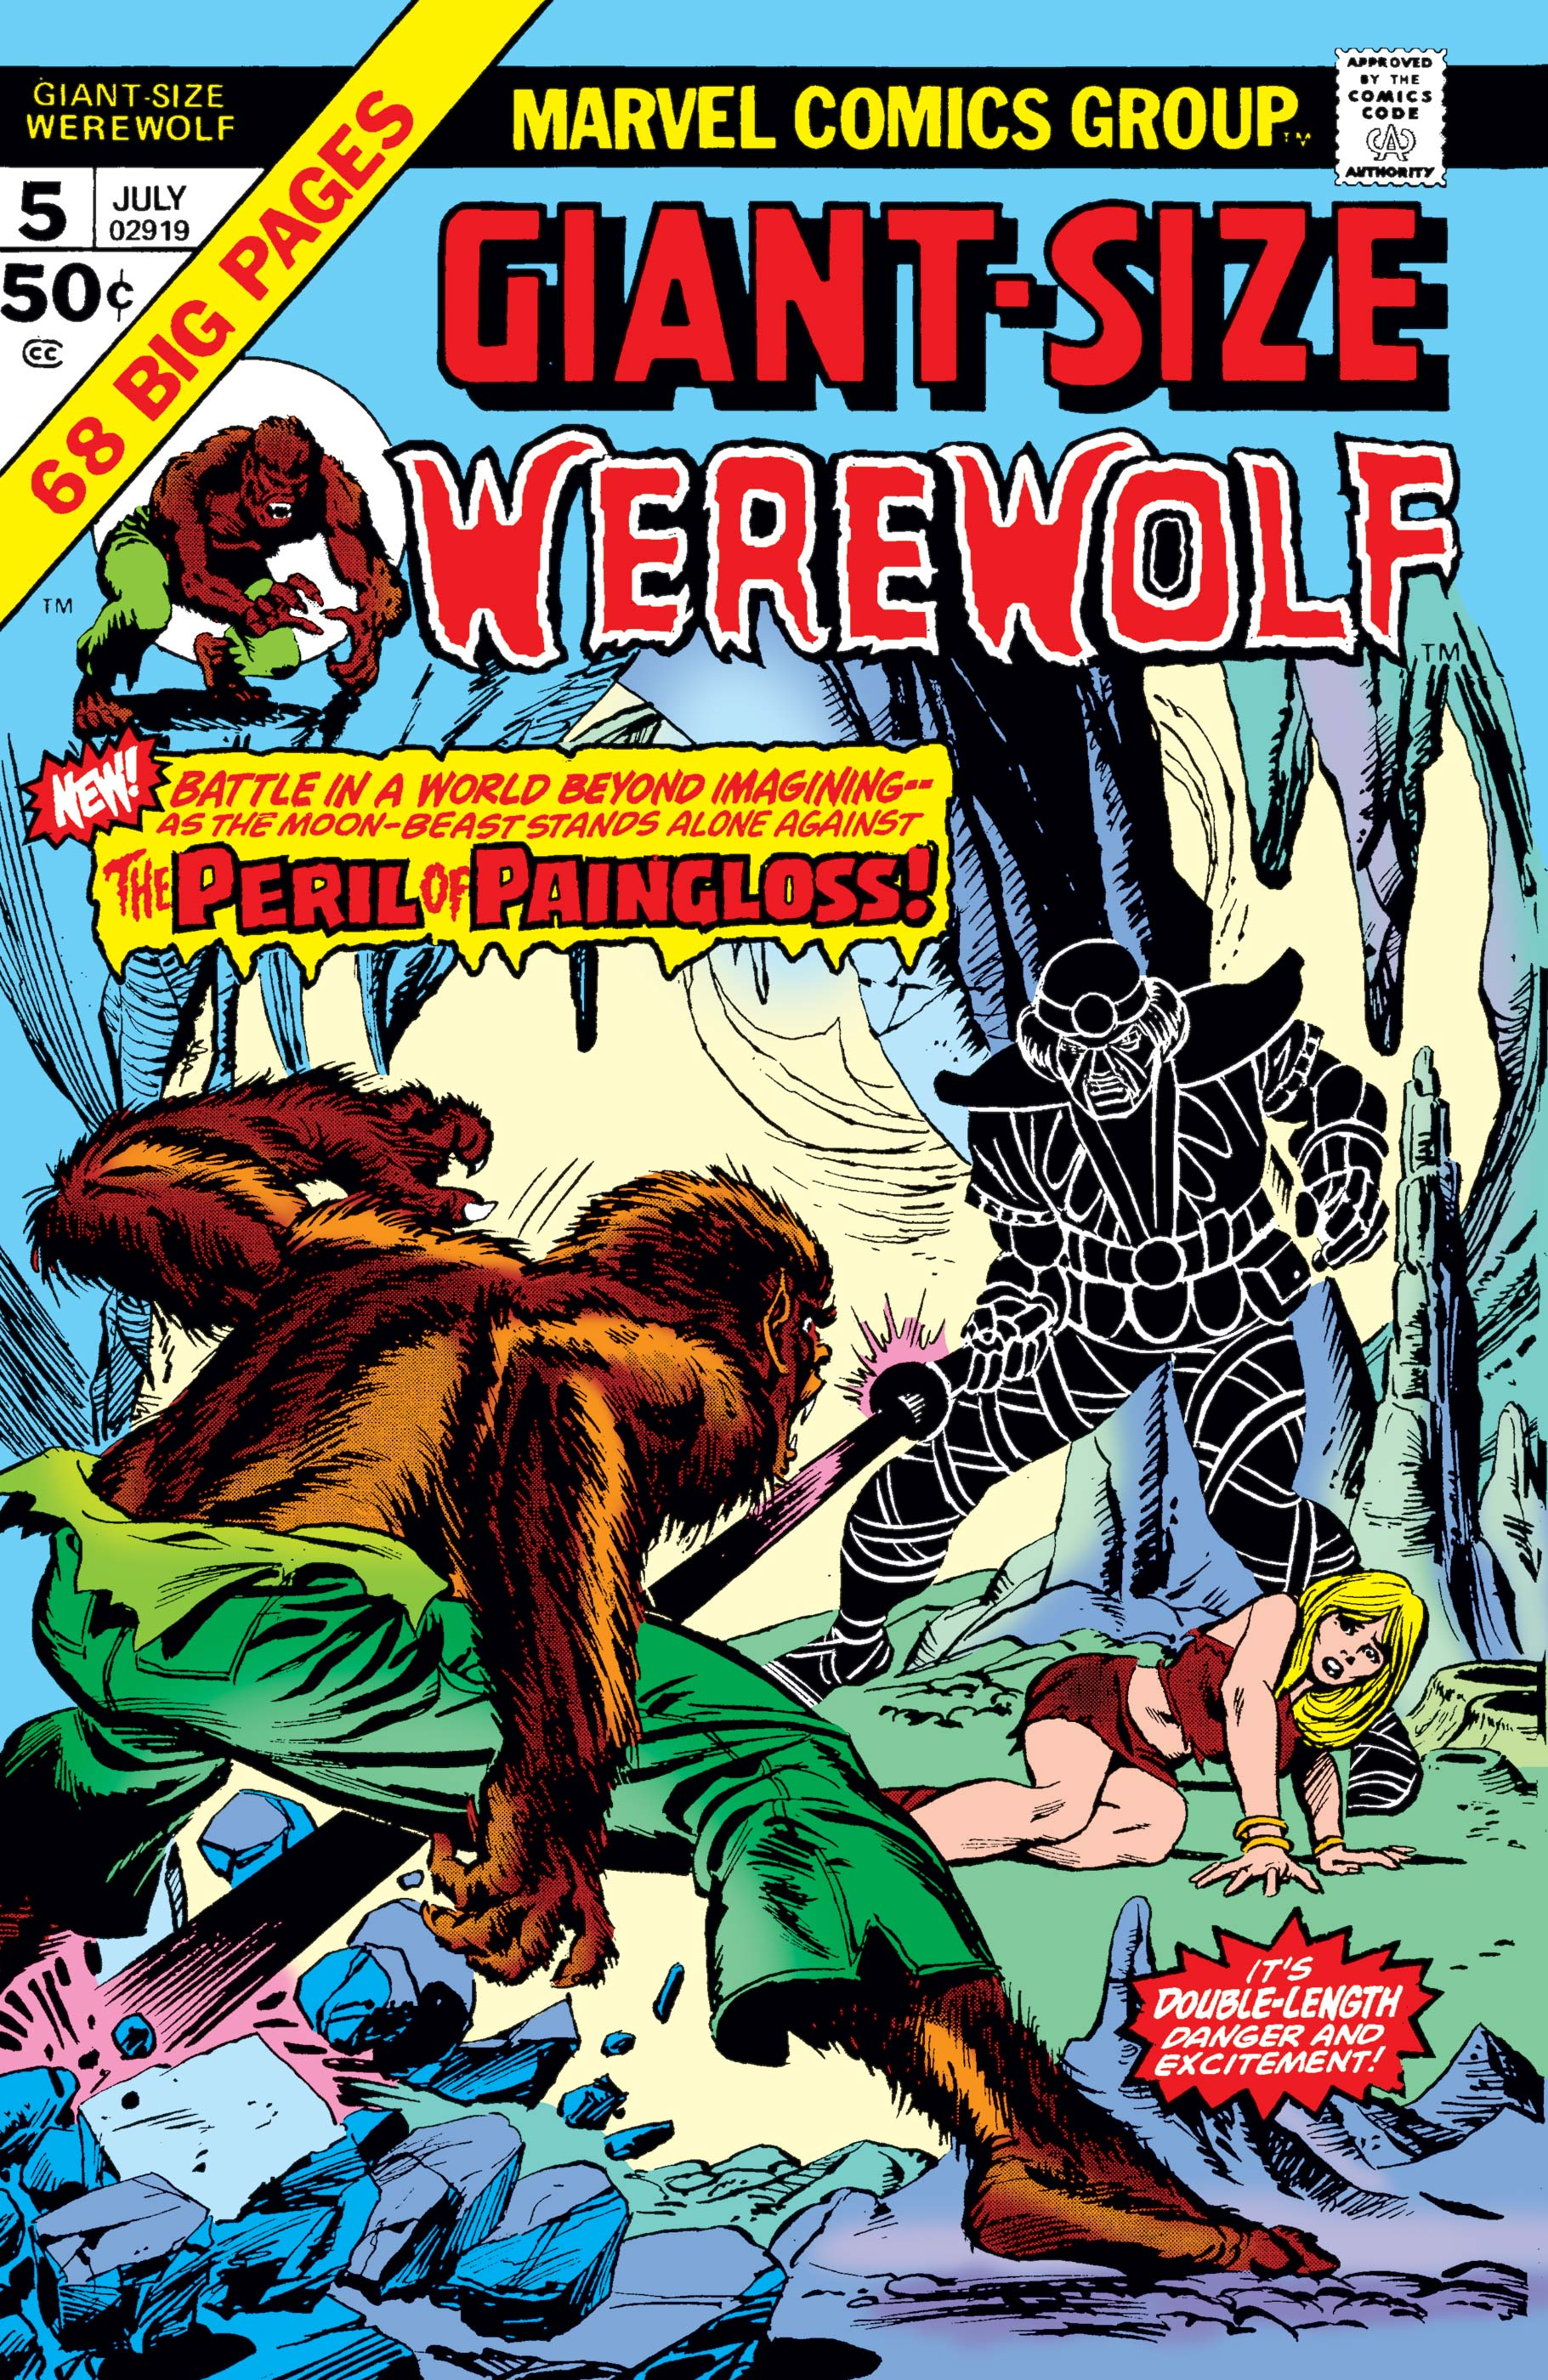 Giant-Size Werewolf by Night (1974) #5